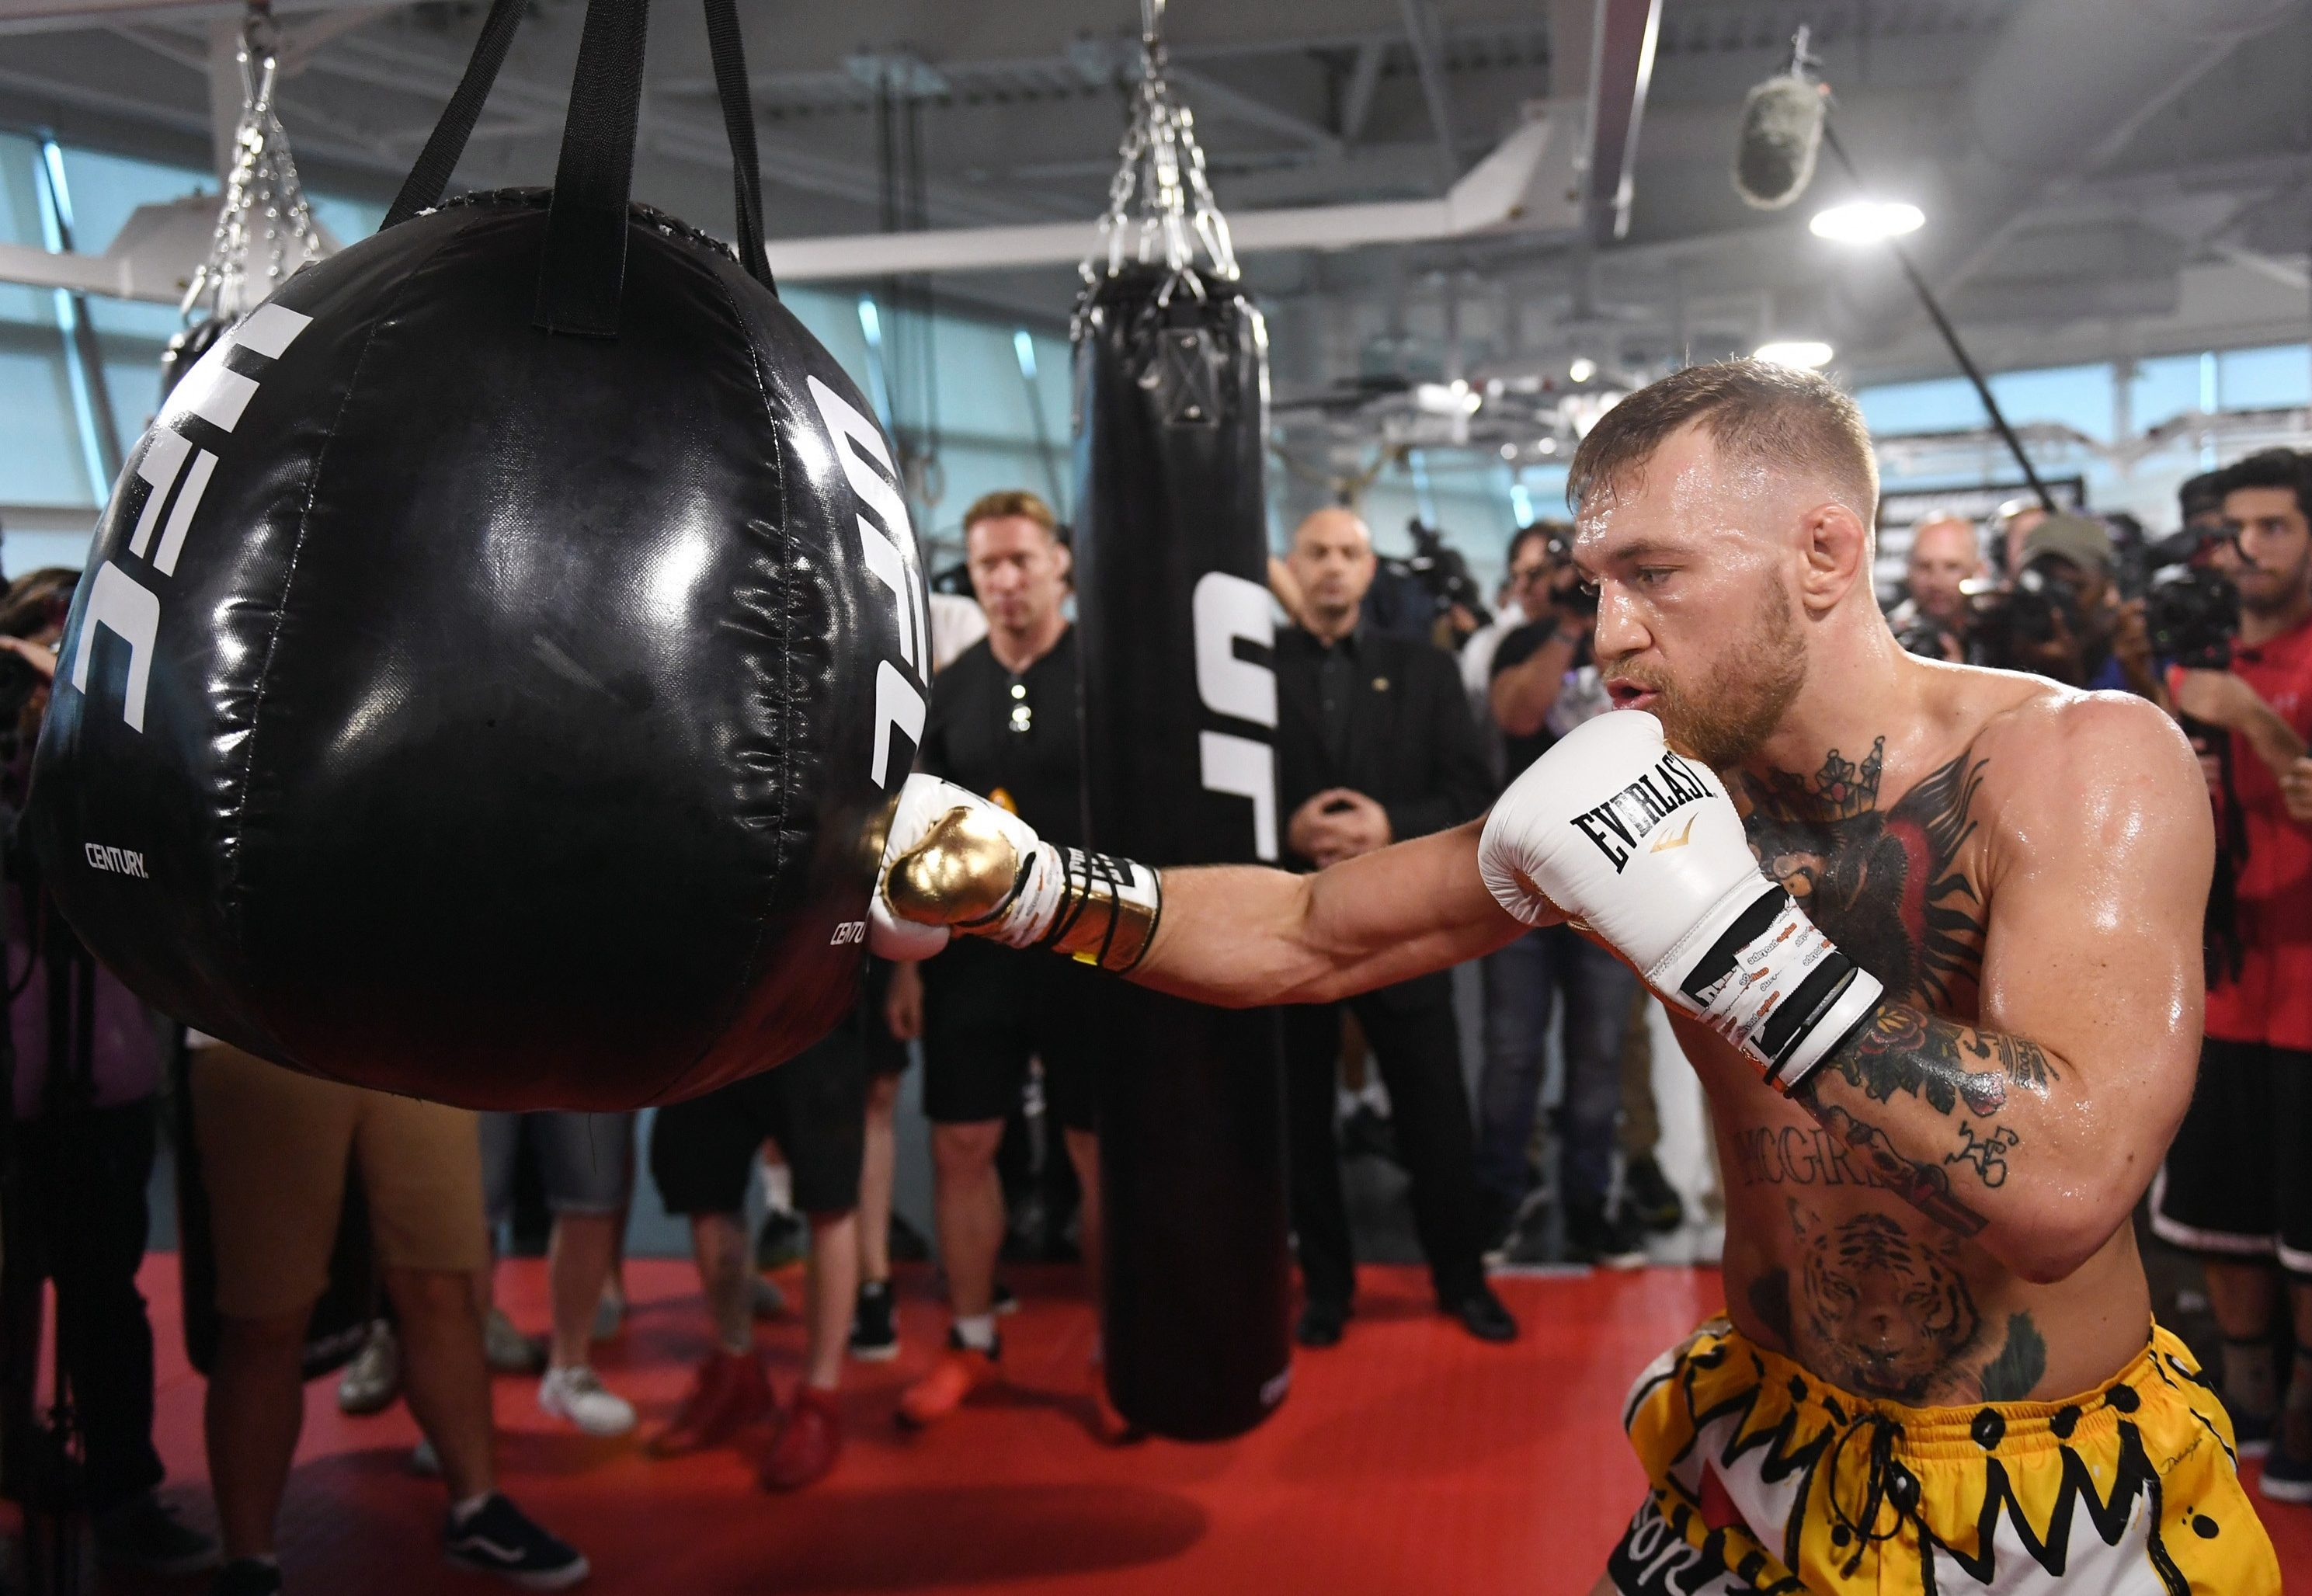 McGregor made his pro boxing debut against Floyd Mayweather in August 2017